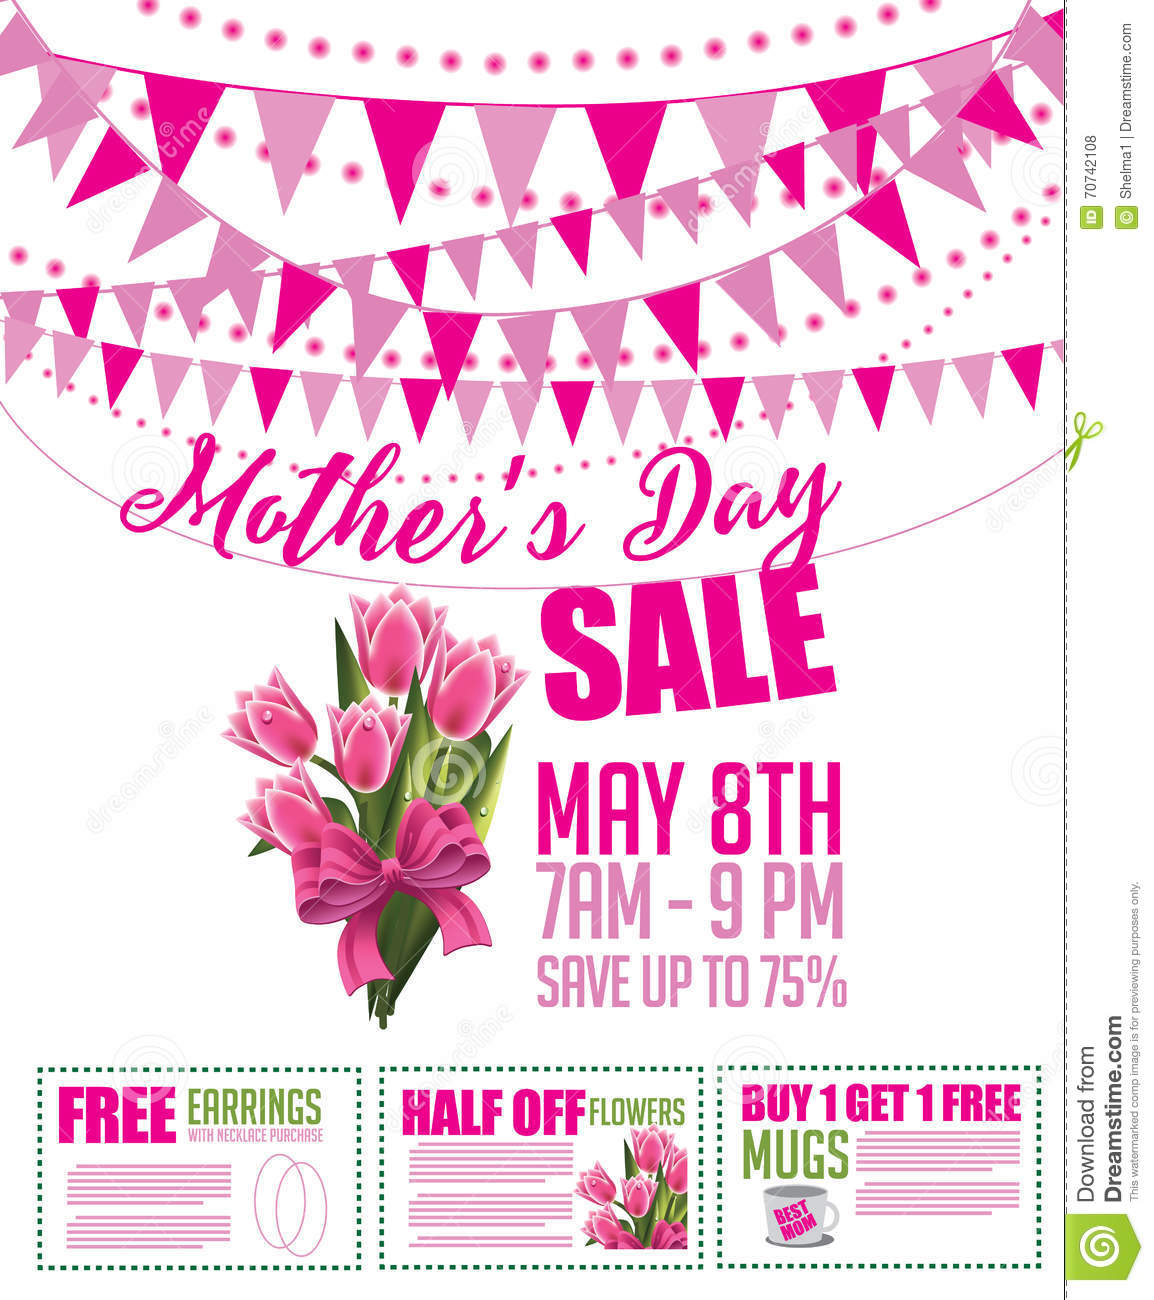 Mothers Day Storewide Sale Template: Mother's Day Sale Bunting And Coupon Marketing Template